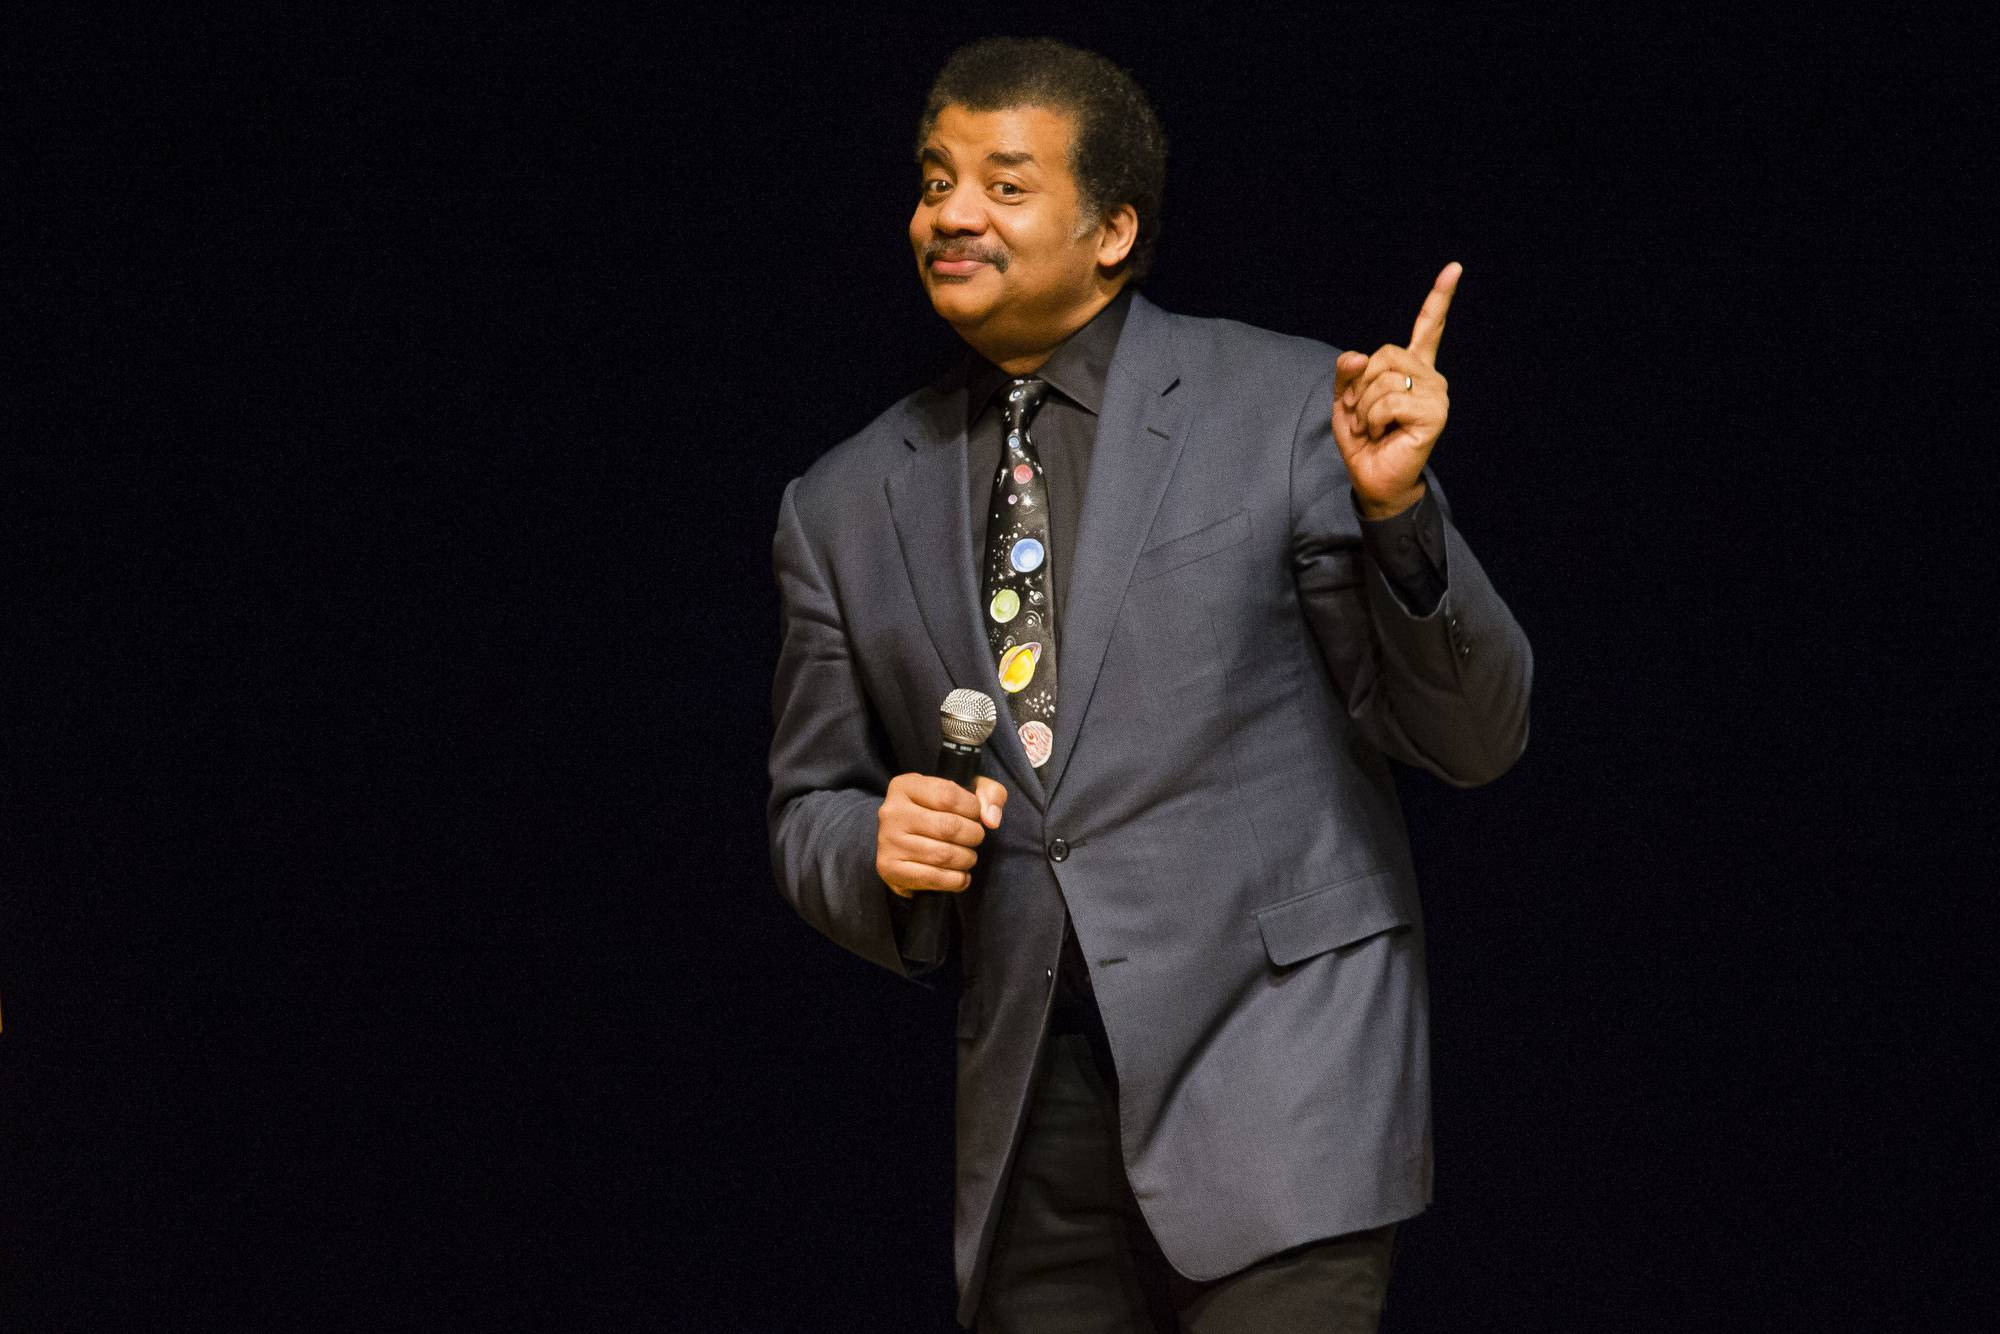 FILE - In this March 21, 2017 file photo, astrophysicist Neil deGrasse Tyson presents a lecture at the Morris Performing Arts Center in South Bend, Ind. Tyson has a suggestion for anyone with a view of next week's solar eclipse: Put down your smartphone and take in the phenomenon yourself. Tyson told an audience to